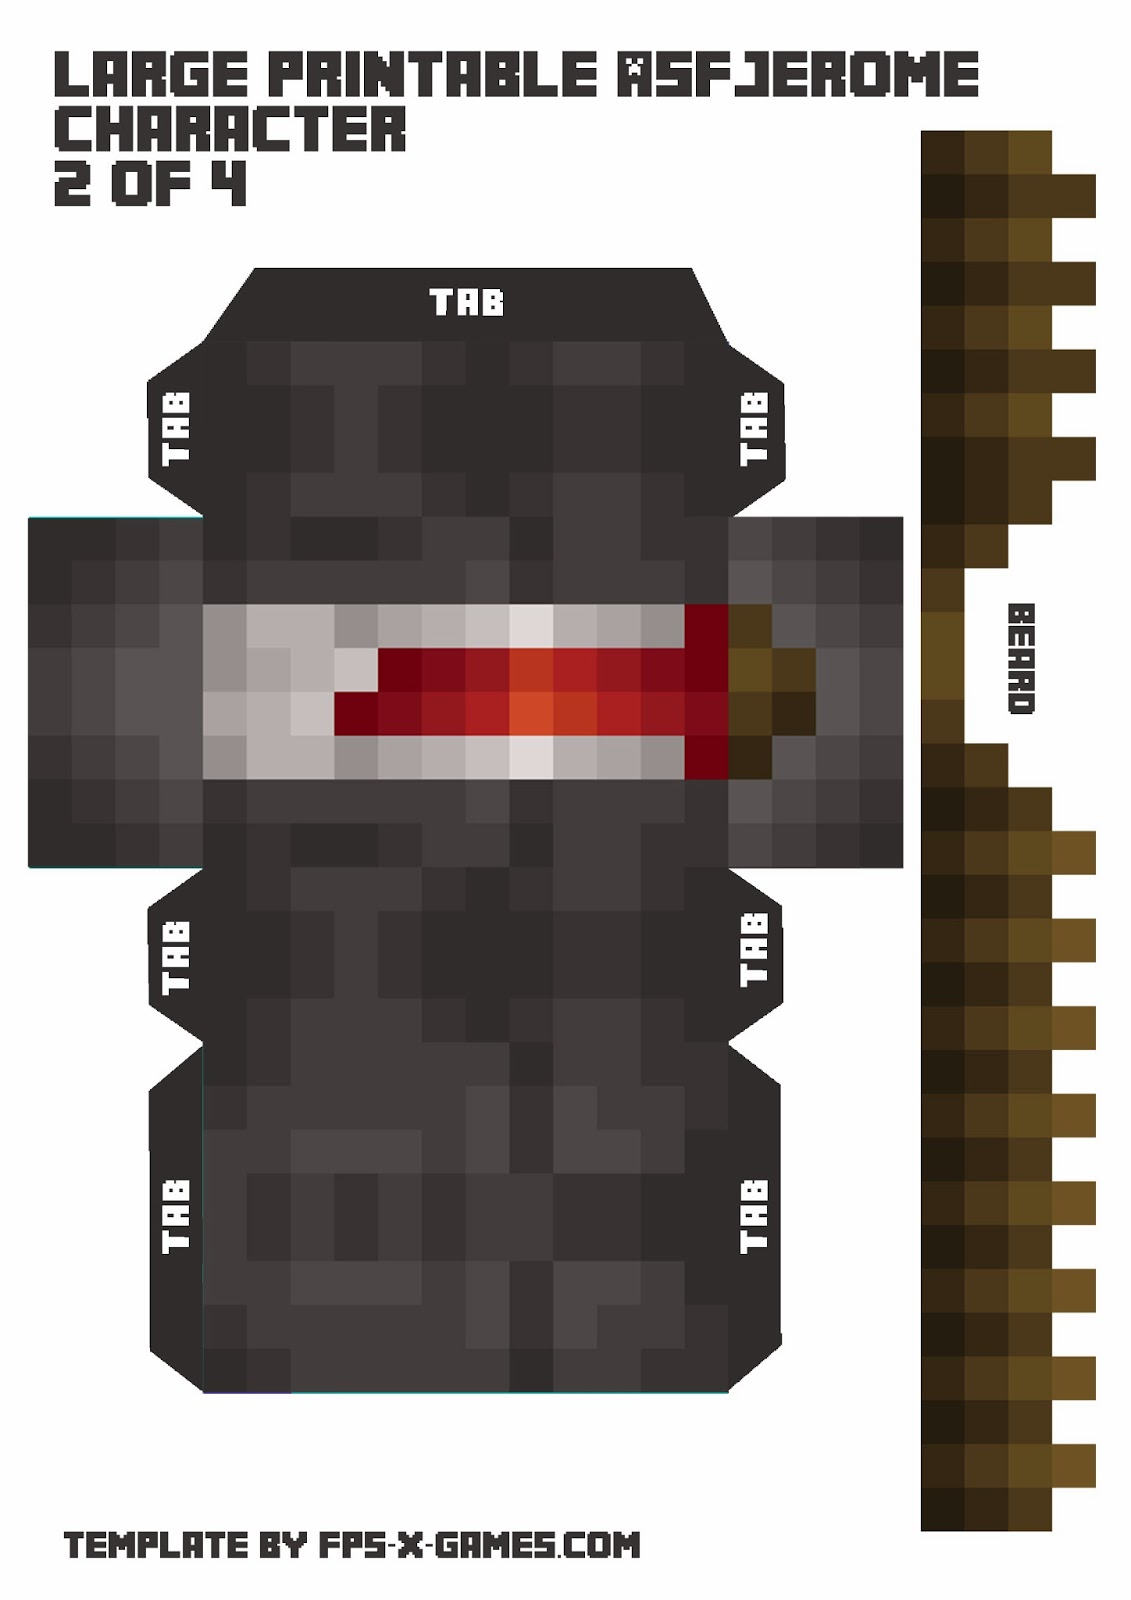 Large ASFJerome Printable Minecraft Character 2 of 4